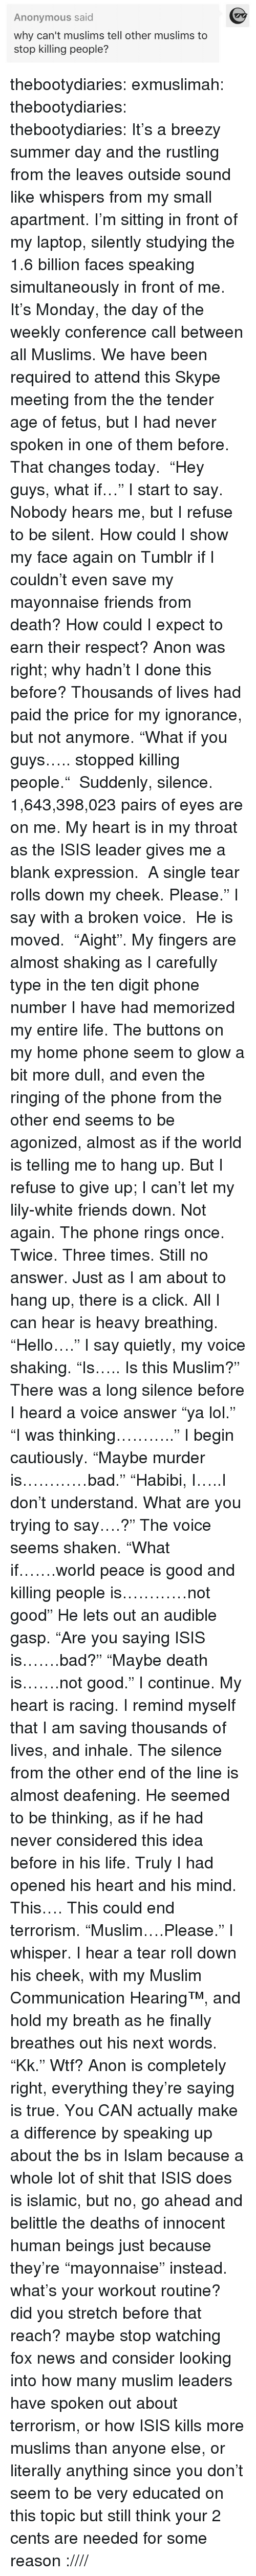 "Bad, Click, and Friends: Anonymous said  why can't muslims tell other muslims to  stop killing people? thebootydiaries:  exmuslimah: thebootydiaries:  thebootydiaries:  It's a breezy summer day and the rustling from the leaves outside sound like whispers from my small apartment. I'm sitting in front of my laptop, silently studying the 1.6 billion faces speaking simultaneously in front of me. It's Monday, the day of the weekly conference call between all Muslims. We have been required to attend this Skype meeting from the the tender age of fetus, but I had never spoken in one of them before.  That changes today.  ""Hey guys, what if…"" I start to say.  Nobody hears me, but I refuse to be silent. How could I show my face again on Tumblr if I couldn't even save my mayonnaise friends from death? How could I expect to earn their respect? Anon was right; why hadn't I done this before? Thousands of lives had paid the price for my ignorance, but not anymore. ""What if you guys….. stopped killing people.""  Suddenly, silence.  1,643,398,023 pairs of eyes are on me. My heart is in my throat as the ISIS leader gives me a blank expression.  A single tear rolls down my cheek. Please."" I say with a broken voice.  He is moved.  ""Aight"".   My fingers are almost shaking as I carefully type in the ten digit phone number I have had memorized my entire life. The buttons on my home phone seem to glow a bit more dull, and even the ringing of the phone from the other end seems to be agonized, almost as if the world is telling me to hang up. But I refuse to give up; I can't let my lily-white friends down. Not again. The phone rings once. Twice. Three times. Still no answer. Just as I am about to hang up, there is a click. All I can hear is heavy breathing. ""Hello…."" I say quietly, my voice shaking. ""Is….. Is this Muslim?"" There was a long silence before I heard a voice answer ""ya lol."" ""I was thinking……….."" I begin cautiously. ""Maybe murder is…………bad."" ""Habibi, I…..I don't understand. What are you trying to say….?"" The voice seems shaken. ""What if…….world peace is good and killing people is…………not good"" He lets out an audible gasp. ""Are you saying ISIS is…….bad?"" ""Maybe death is…….not good."" I continue. My heart is racing. I remind myself that I am saving thousands of lives, and inhale. The silence from the other end of the line is almost deafening. He seemed to be thinking, as if he had never considered this idea before in his life. Truly I had opened his heart and his mind. This…. This could end terrorism. ""Muslim….Please."" I whisper. I hear a tear roll down his cheek, with my Muslim Communication Hearing™, and hold my breath as he finally breathes out his next words. ""Kk.""  Wtf? Anon is completely right, everything they're saying is true. You CAN actually make a difference by speaking up about the bs in Islam because a whole lot of shit that ISIS does is islamic, but no, go ahead and belittle the deaths of innocent human beings just because they're ""mayonnaise"" instead.  what's your workout routine? did you stretch before that reach? maybe stop watching fox news and consider looking into how many muslim leaders have spoken out about terrorism, or how ISIS kills more muslims than anyone else, or literally anything since you don't seem to be very educated on this topic but still think your 2 cents are needed for some reason :////"